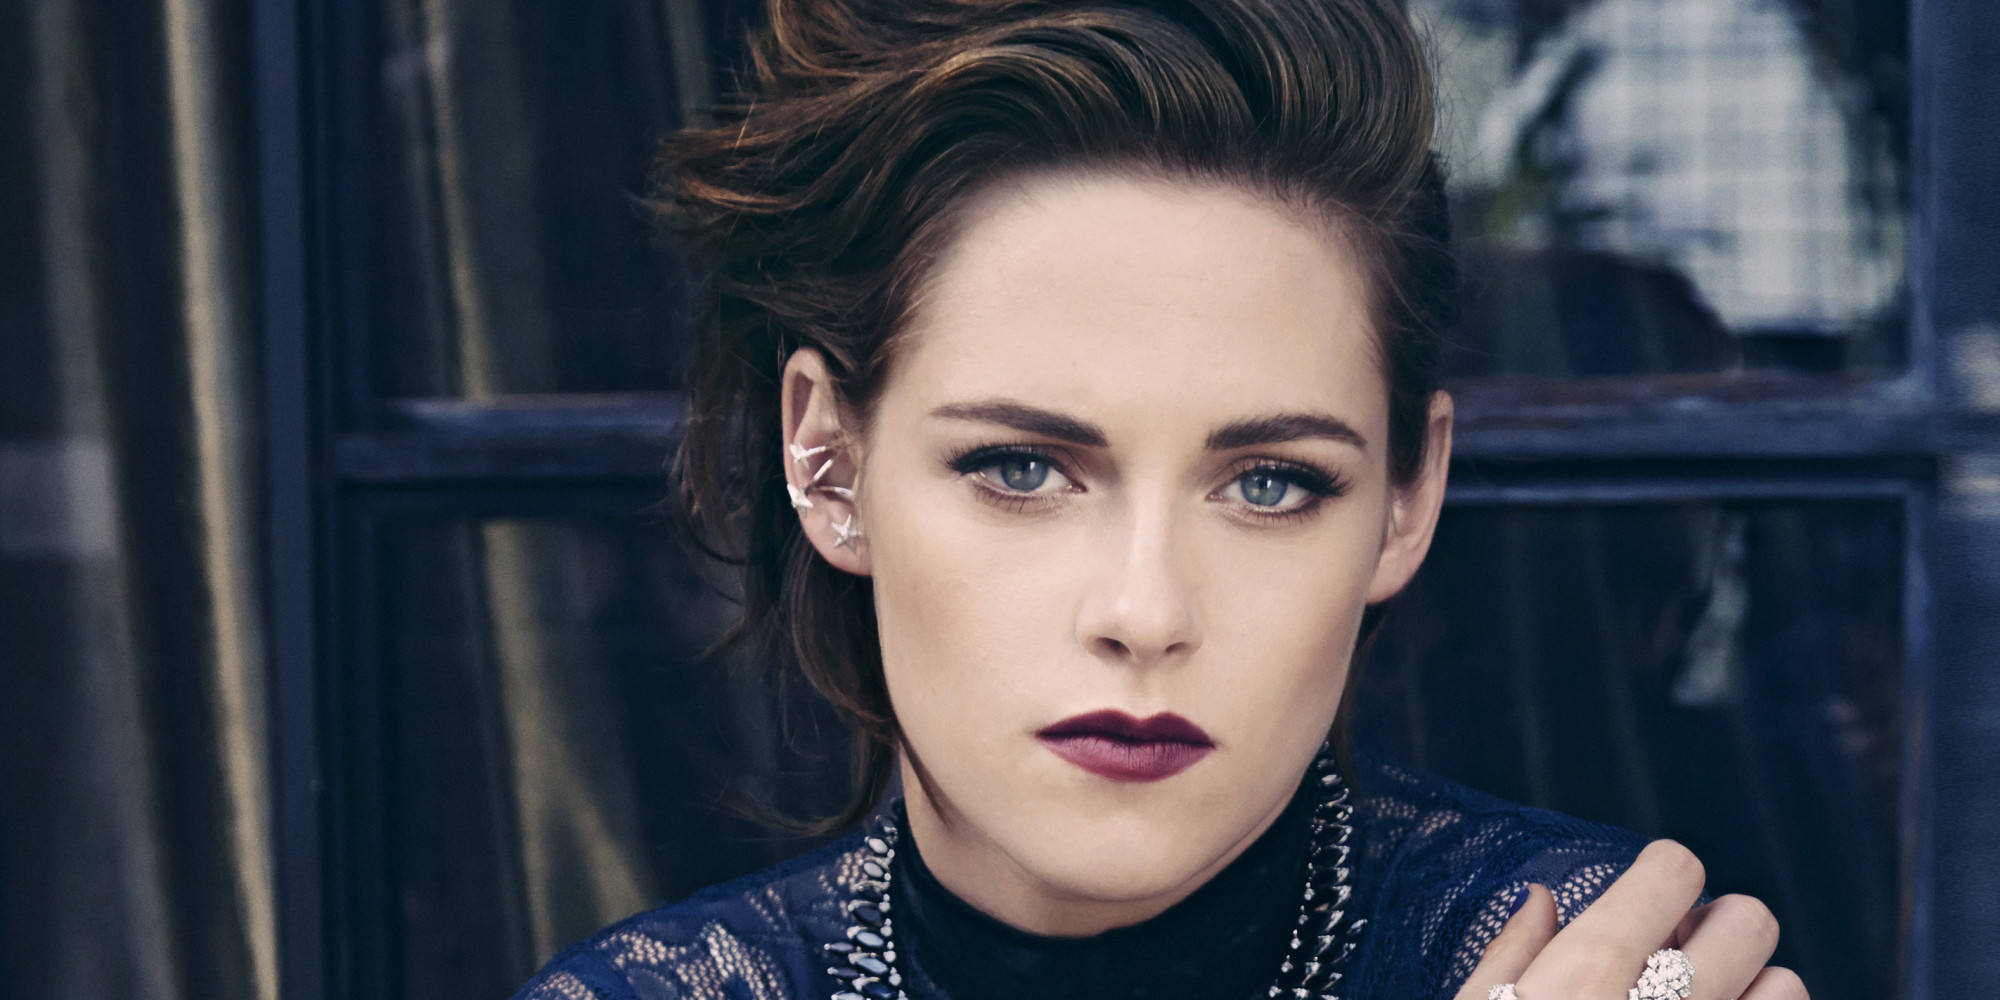 Kristen Stewart has opened up about her relationship with Robert Pattinson